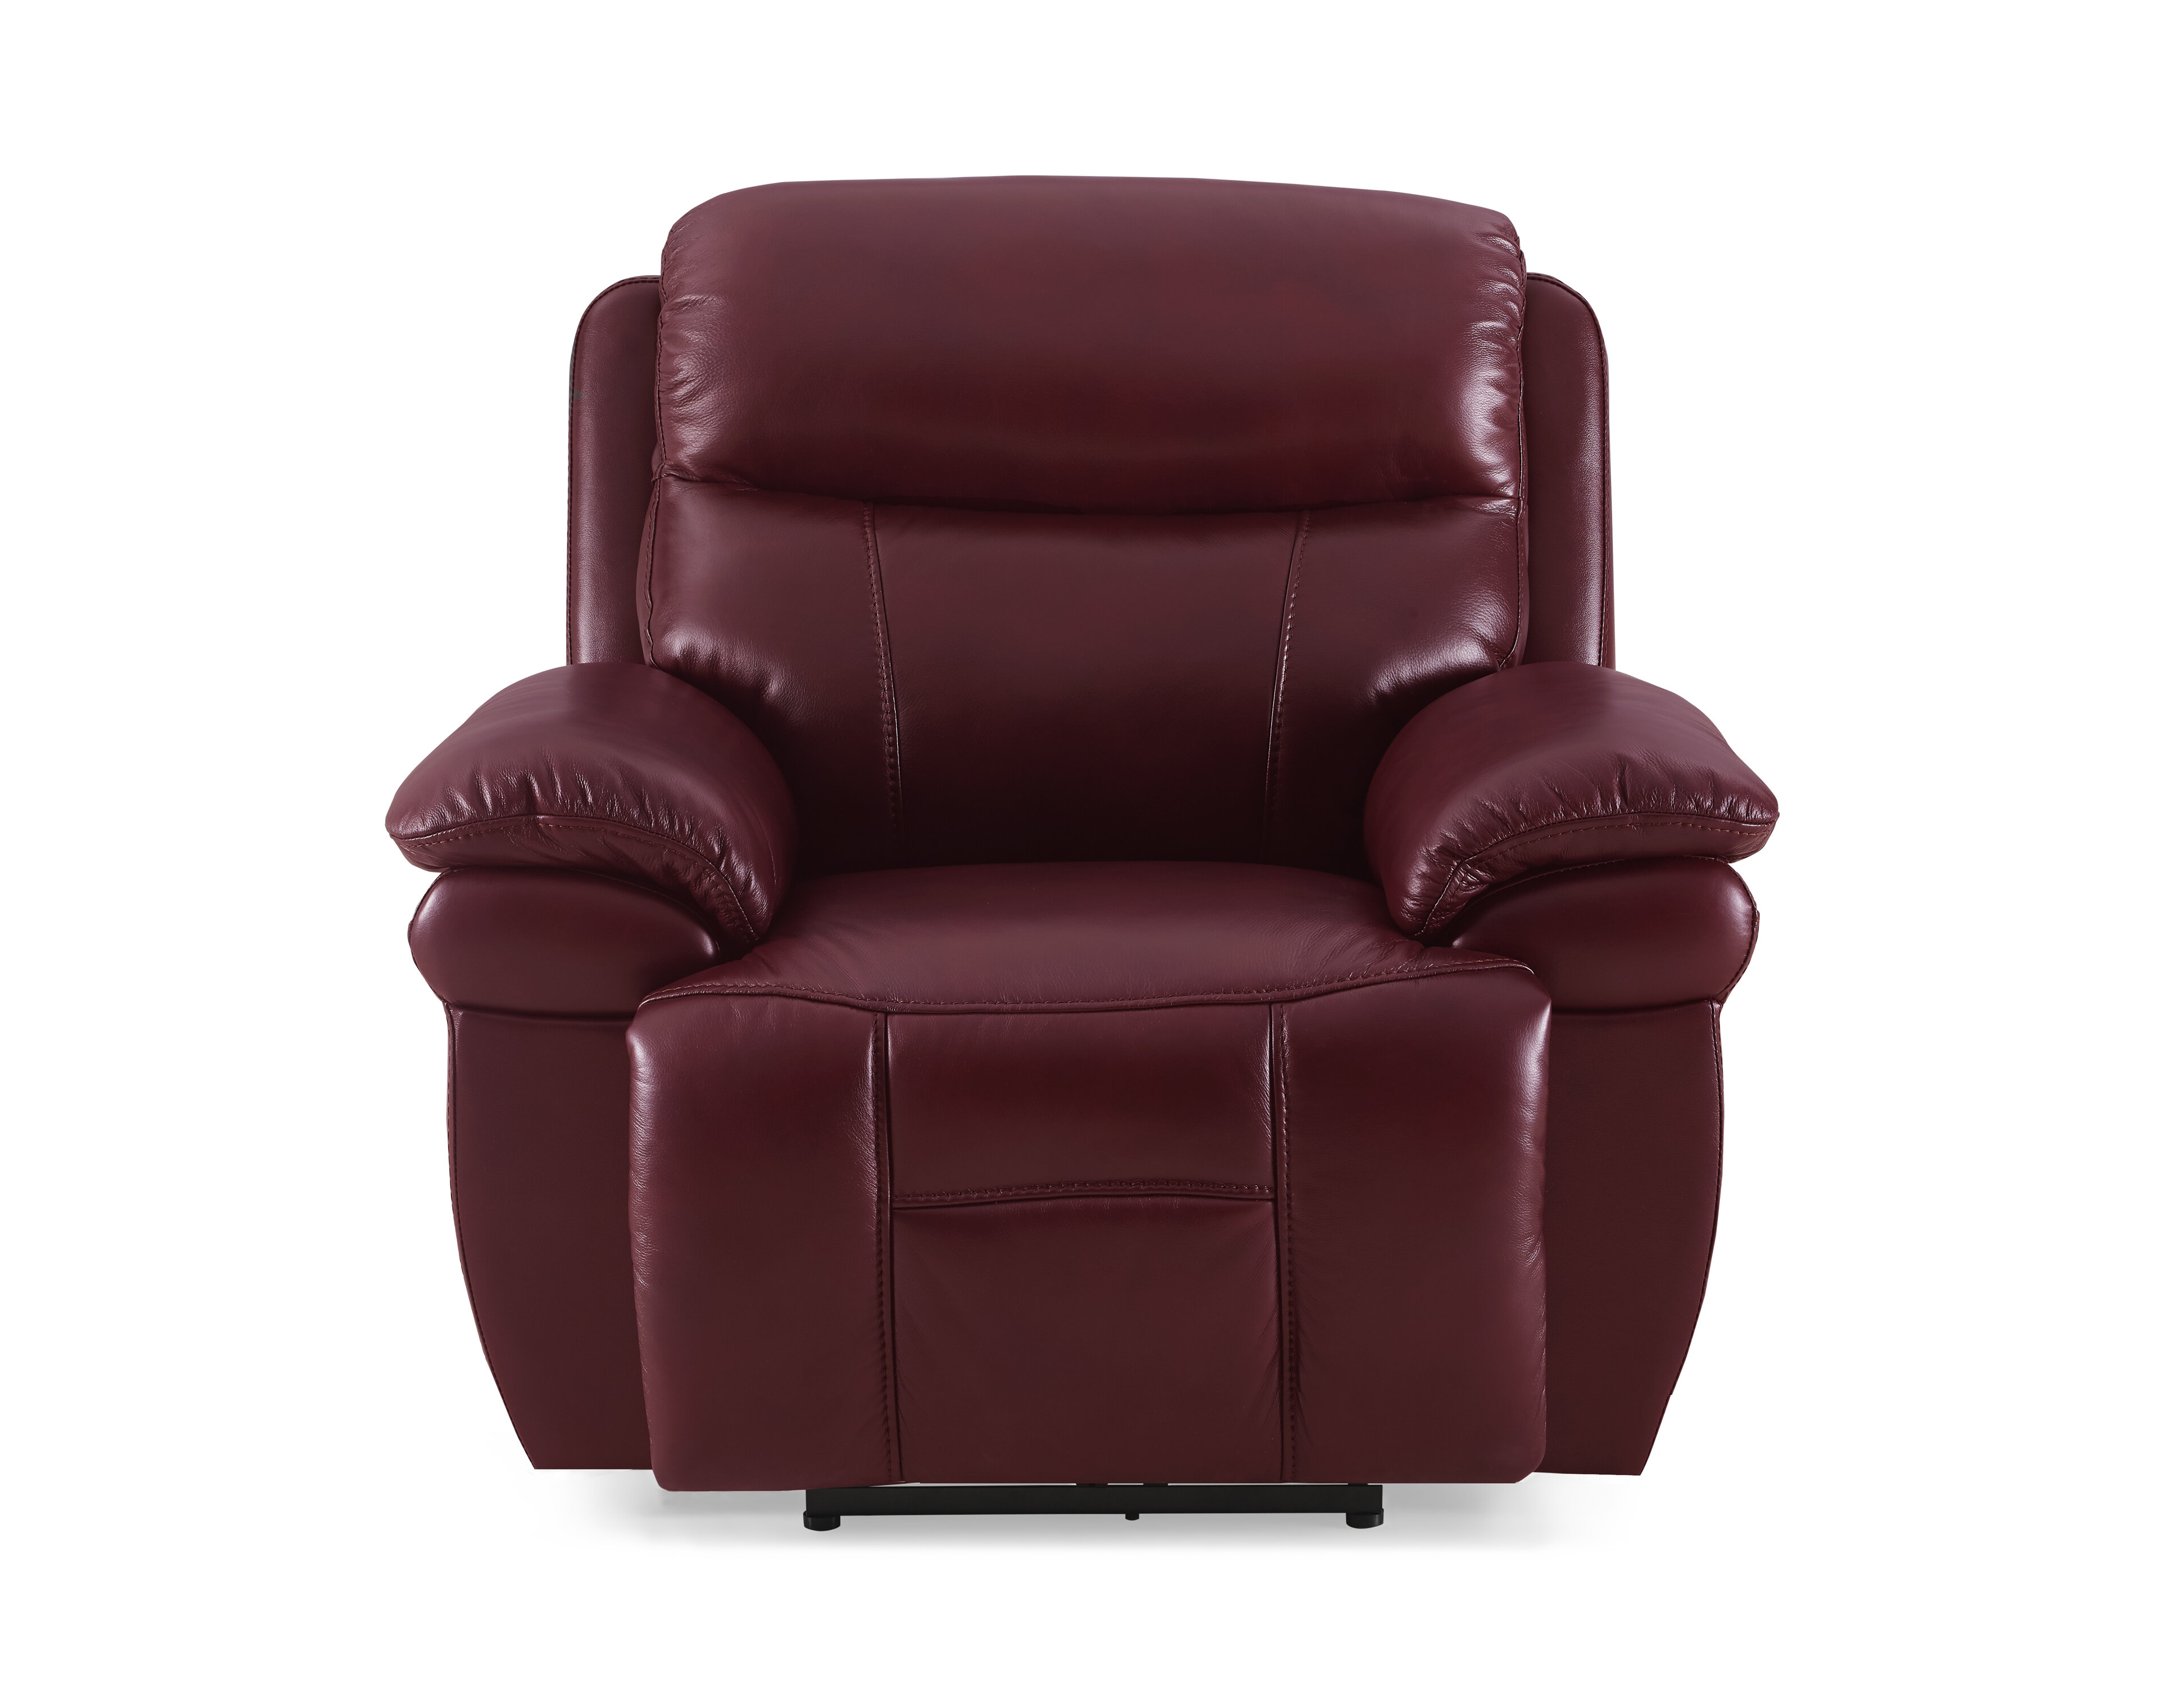 acke for used recliner recliners cheap info sale loveseat